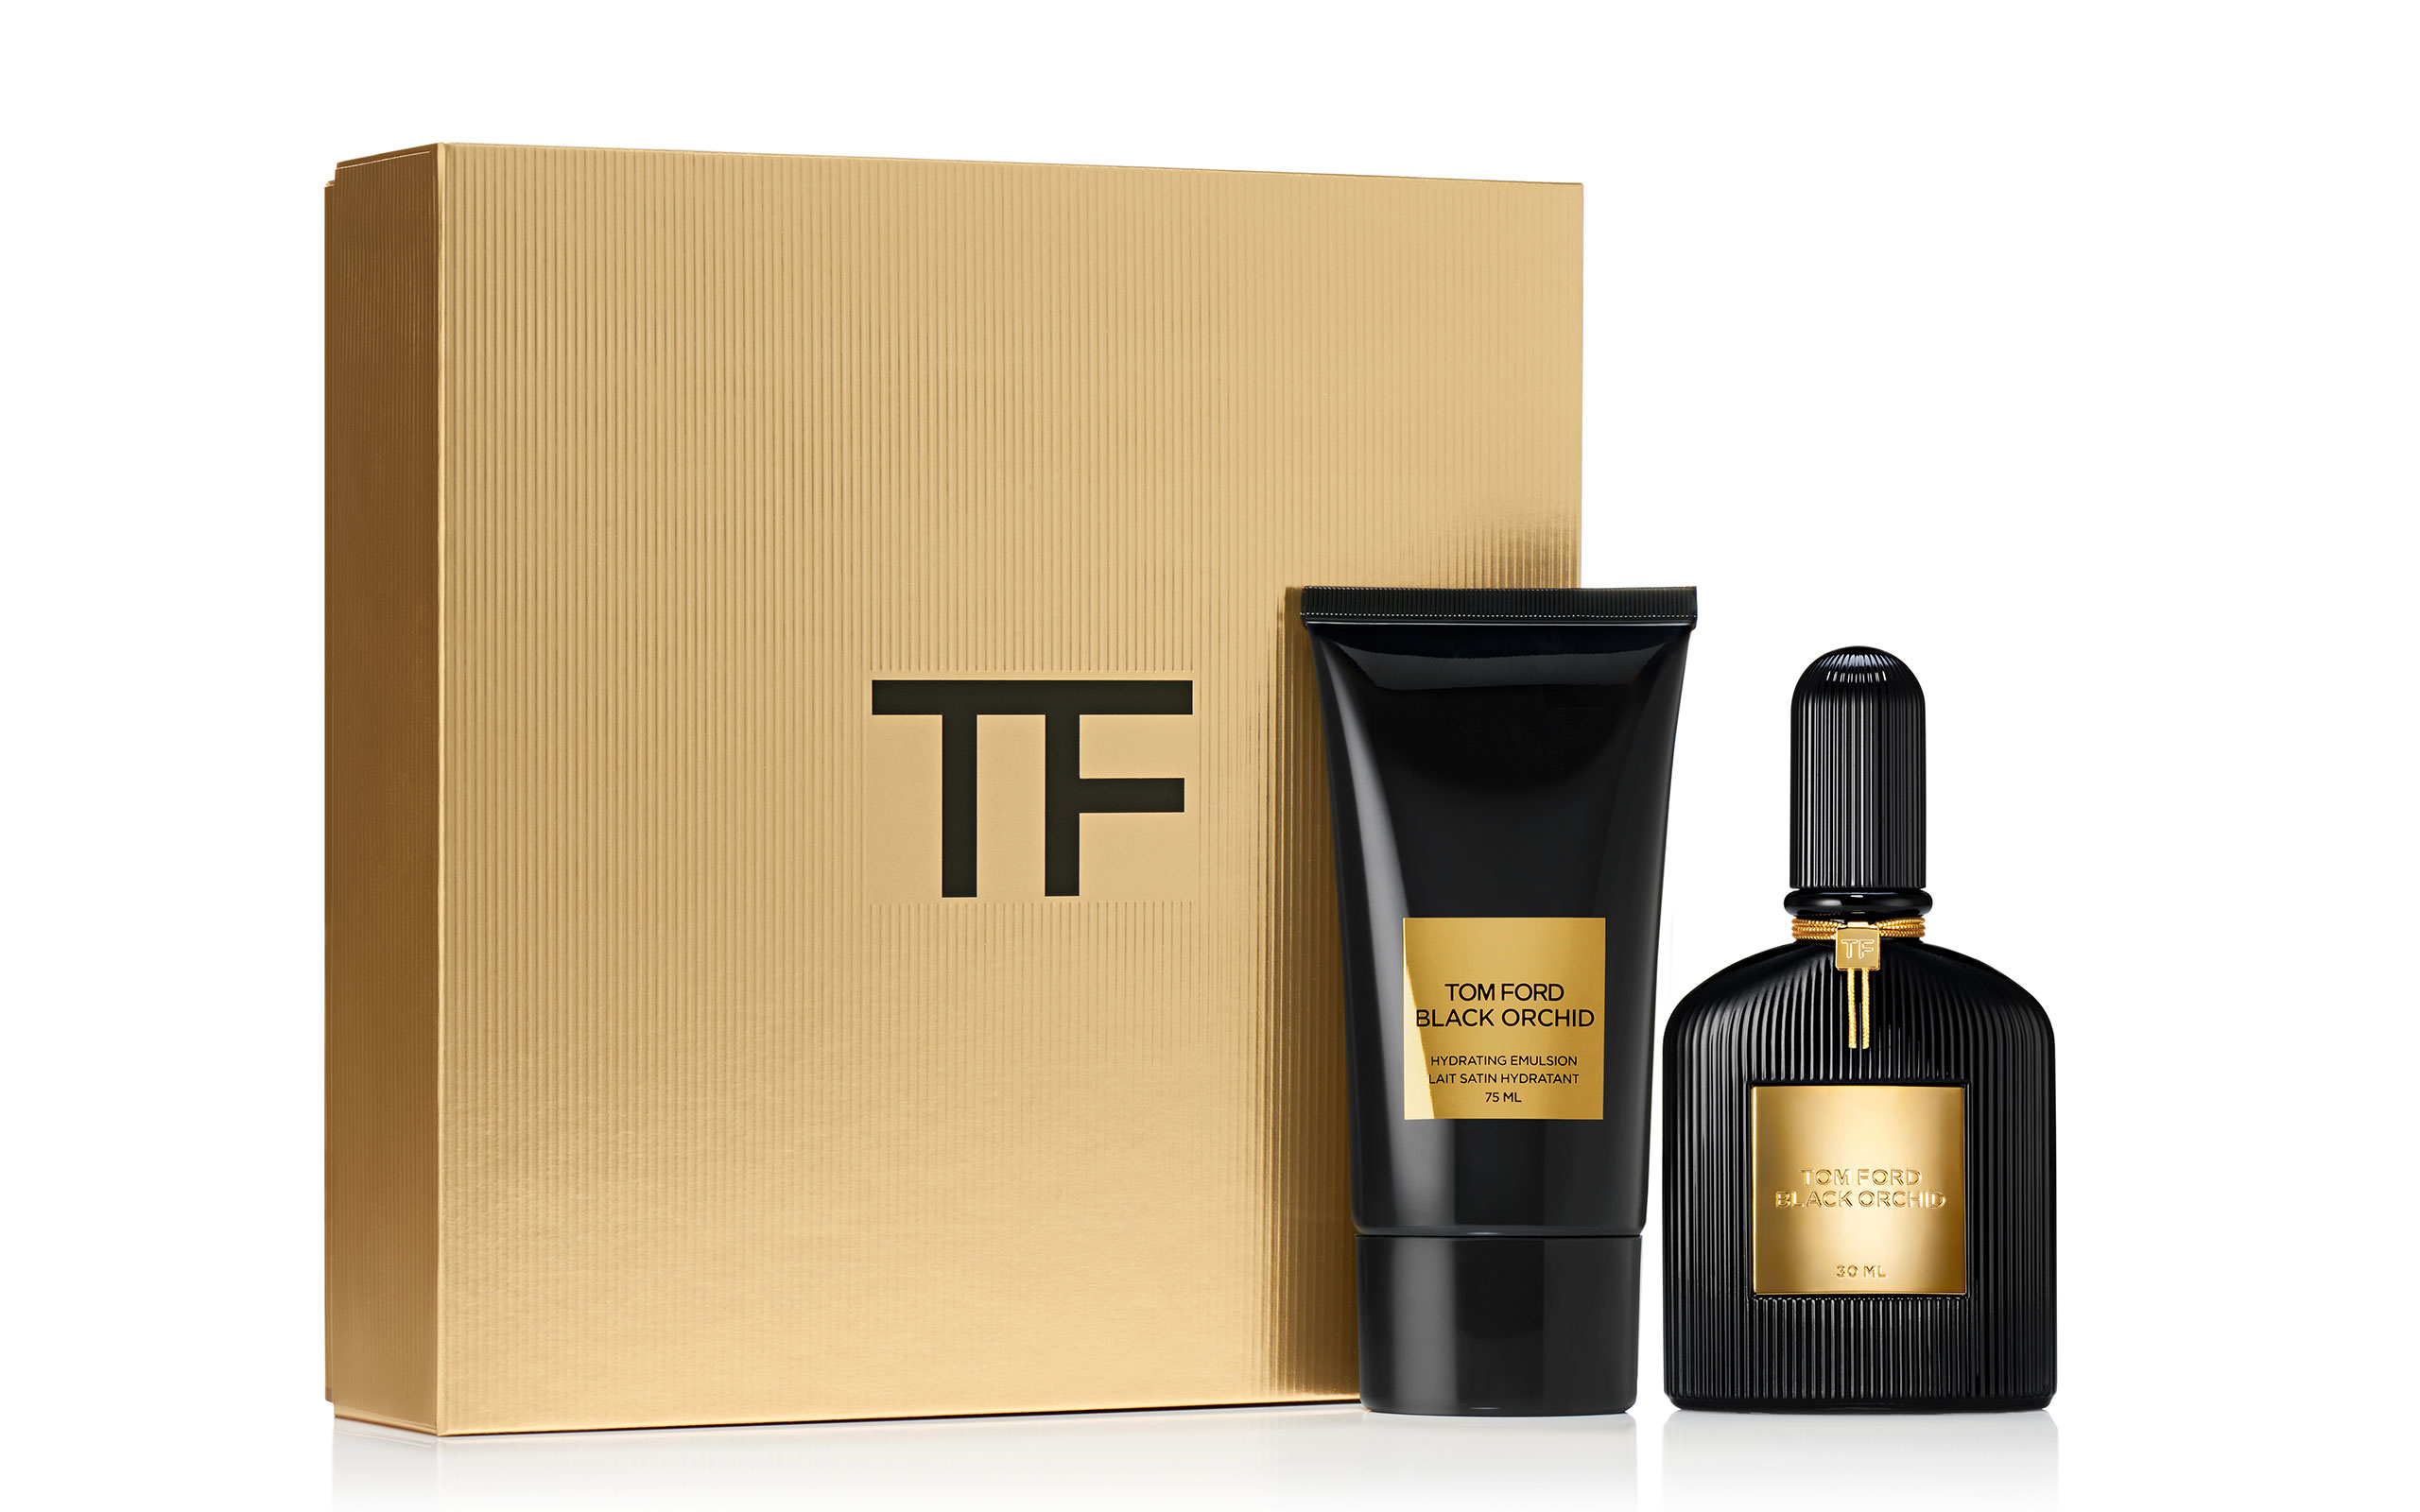 TOM FORD BEAUTY Launches Holiday Collection